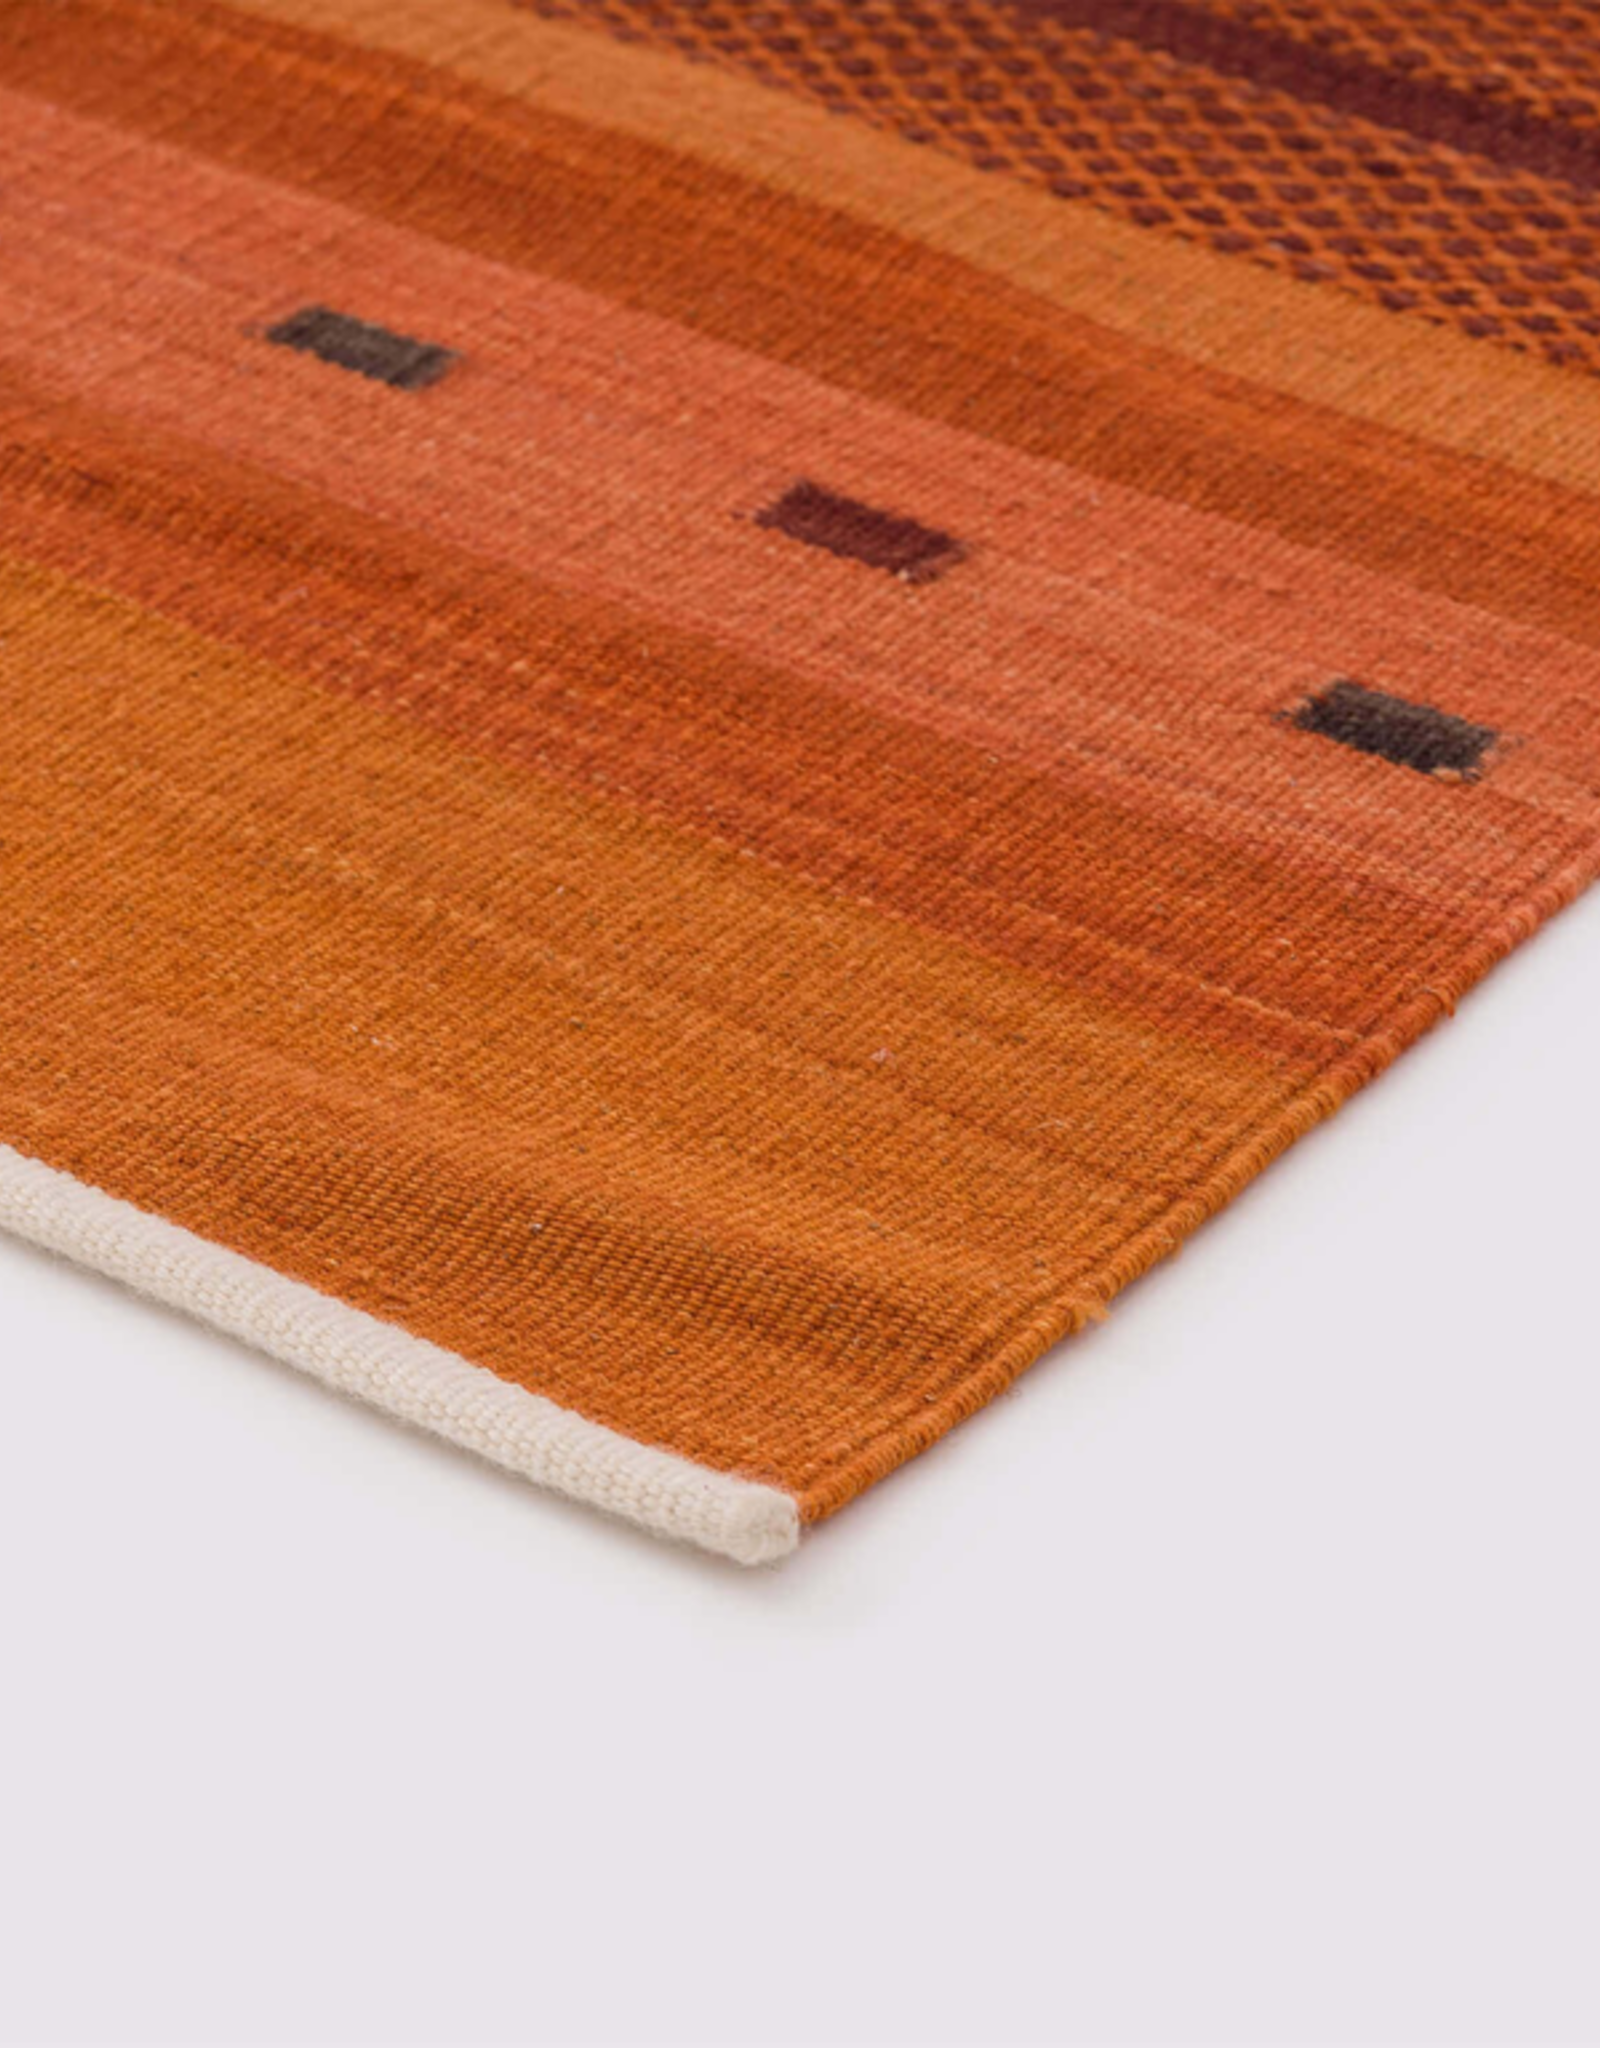 Atlas Hallway Runner Orange 100% Wool